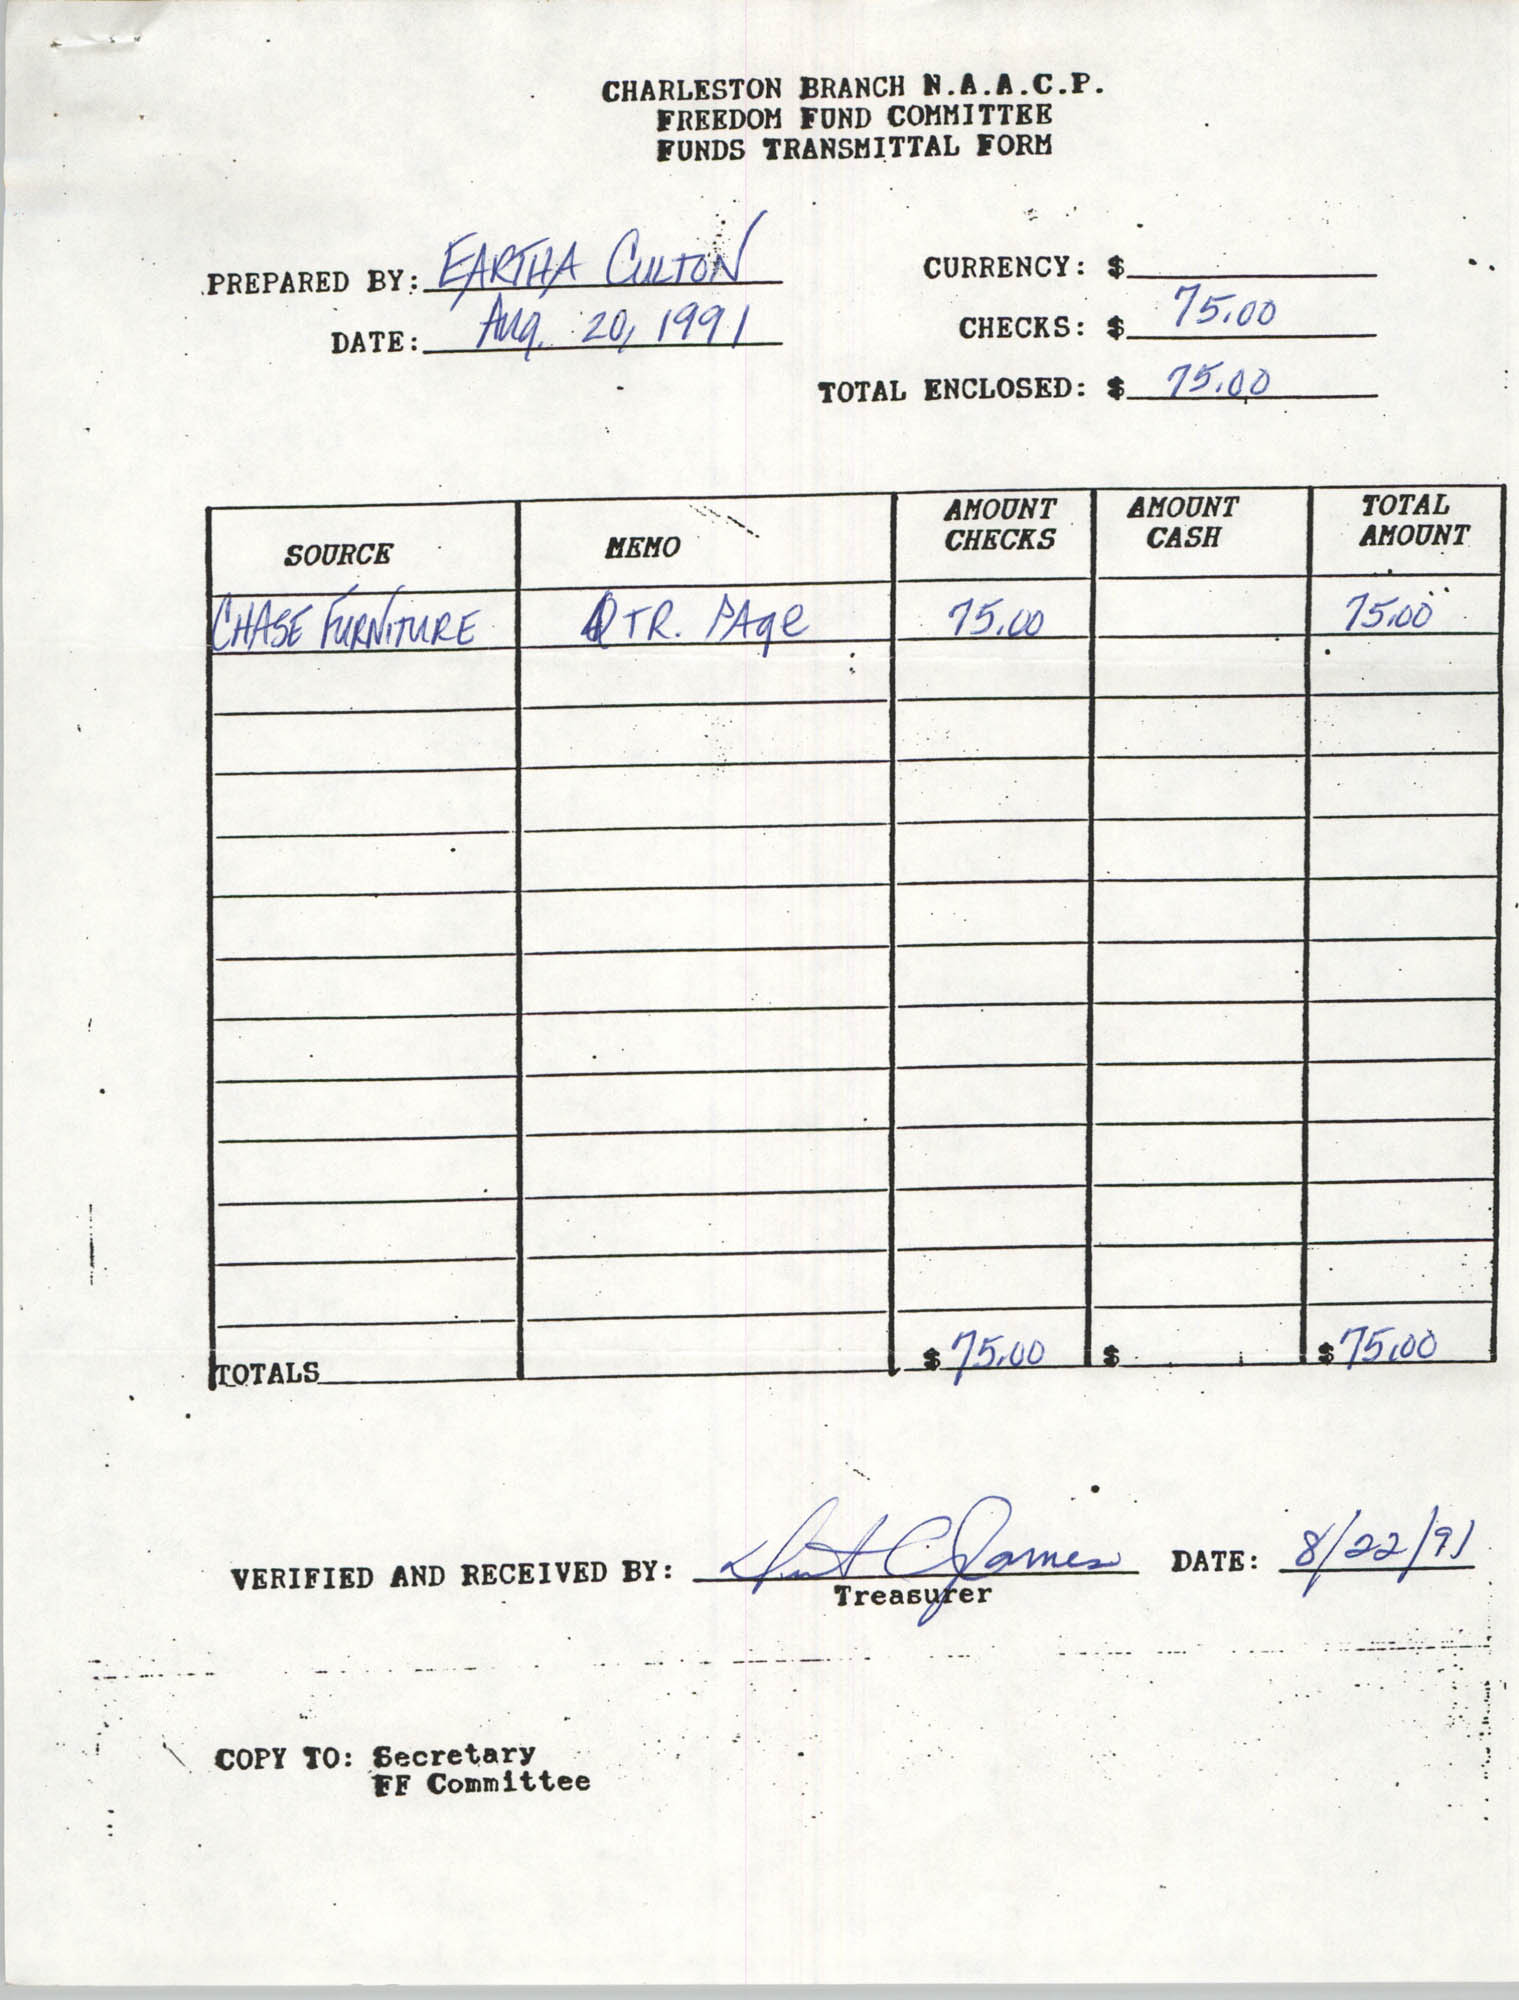 Charleston Branch of the NAACP Funds Transmittal Forms, August 1991, Page 21